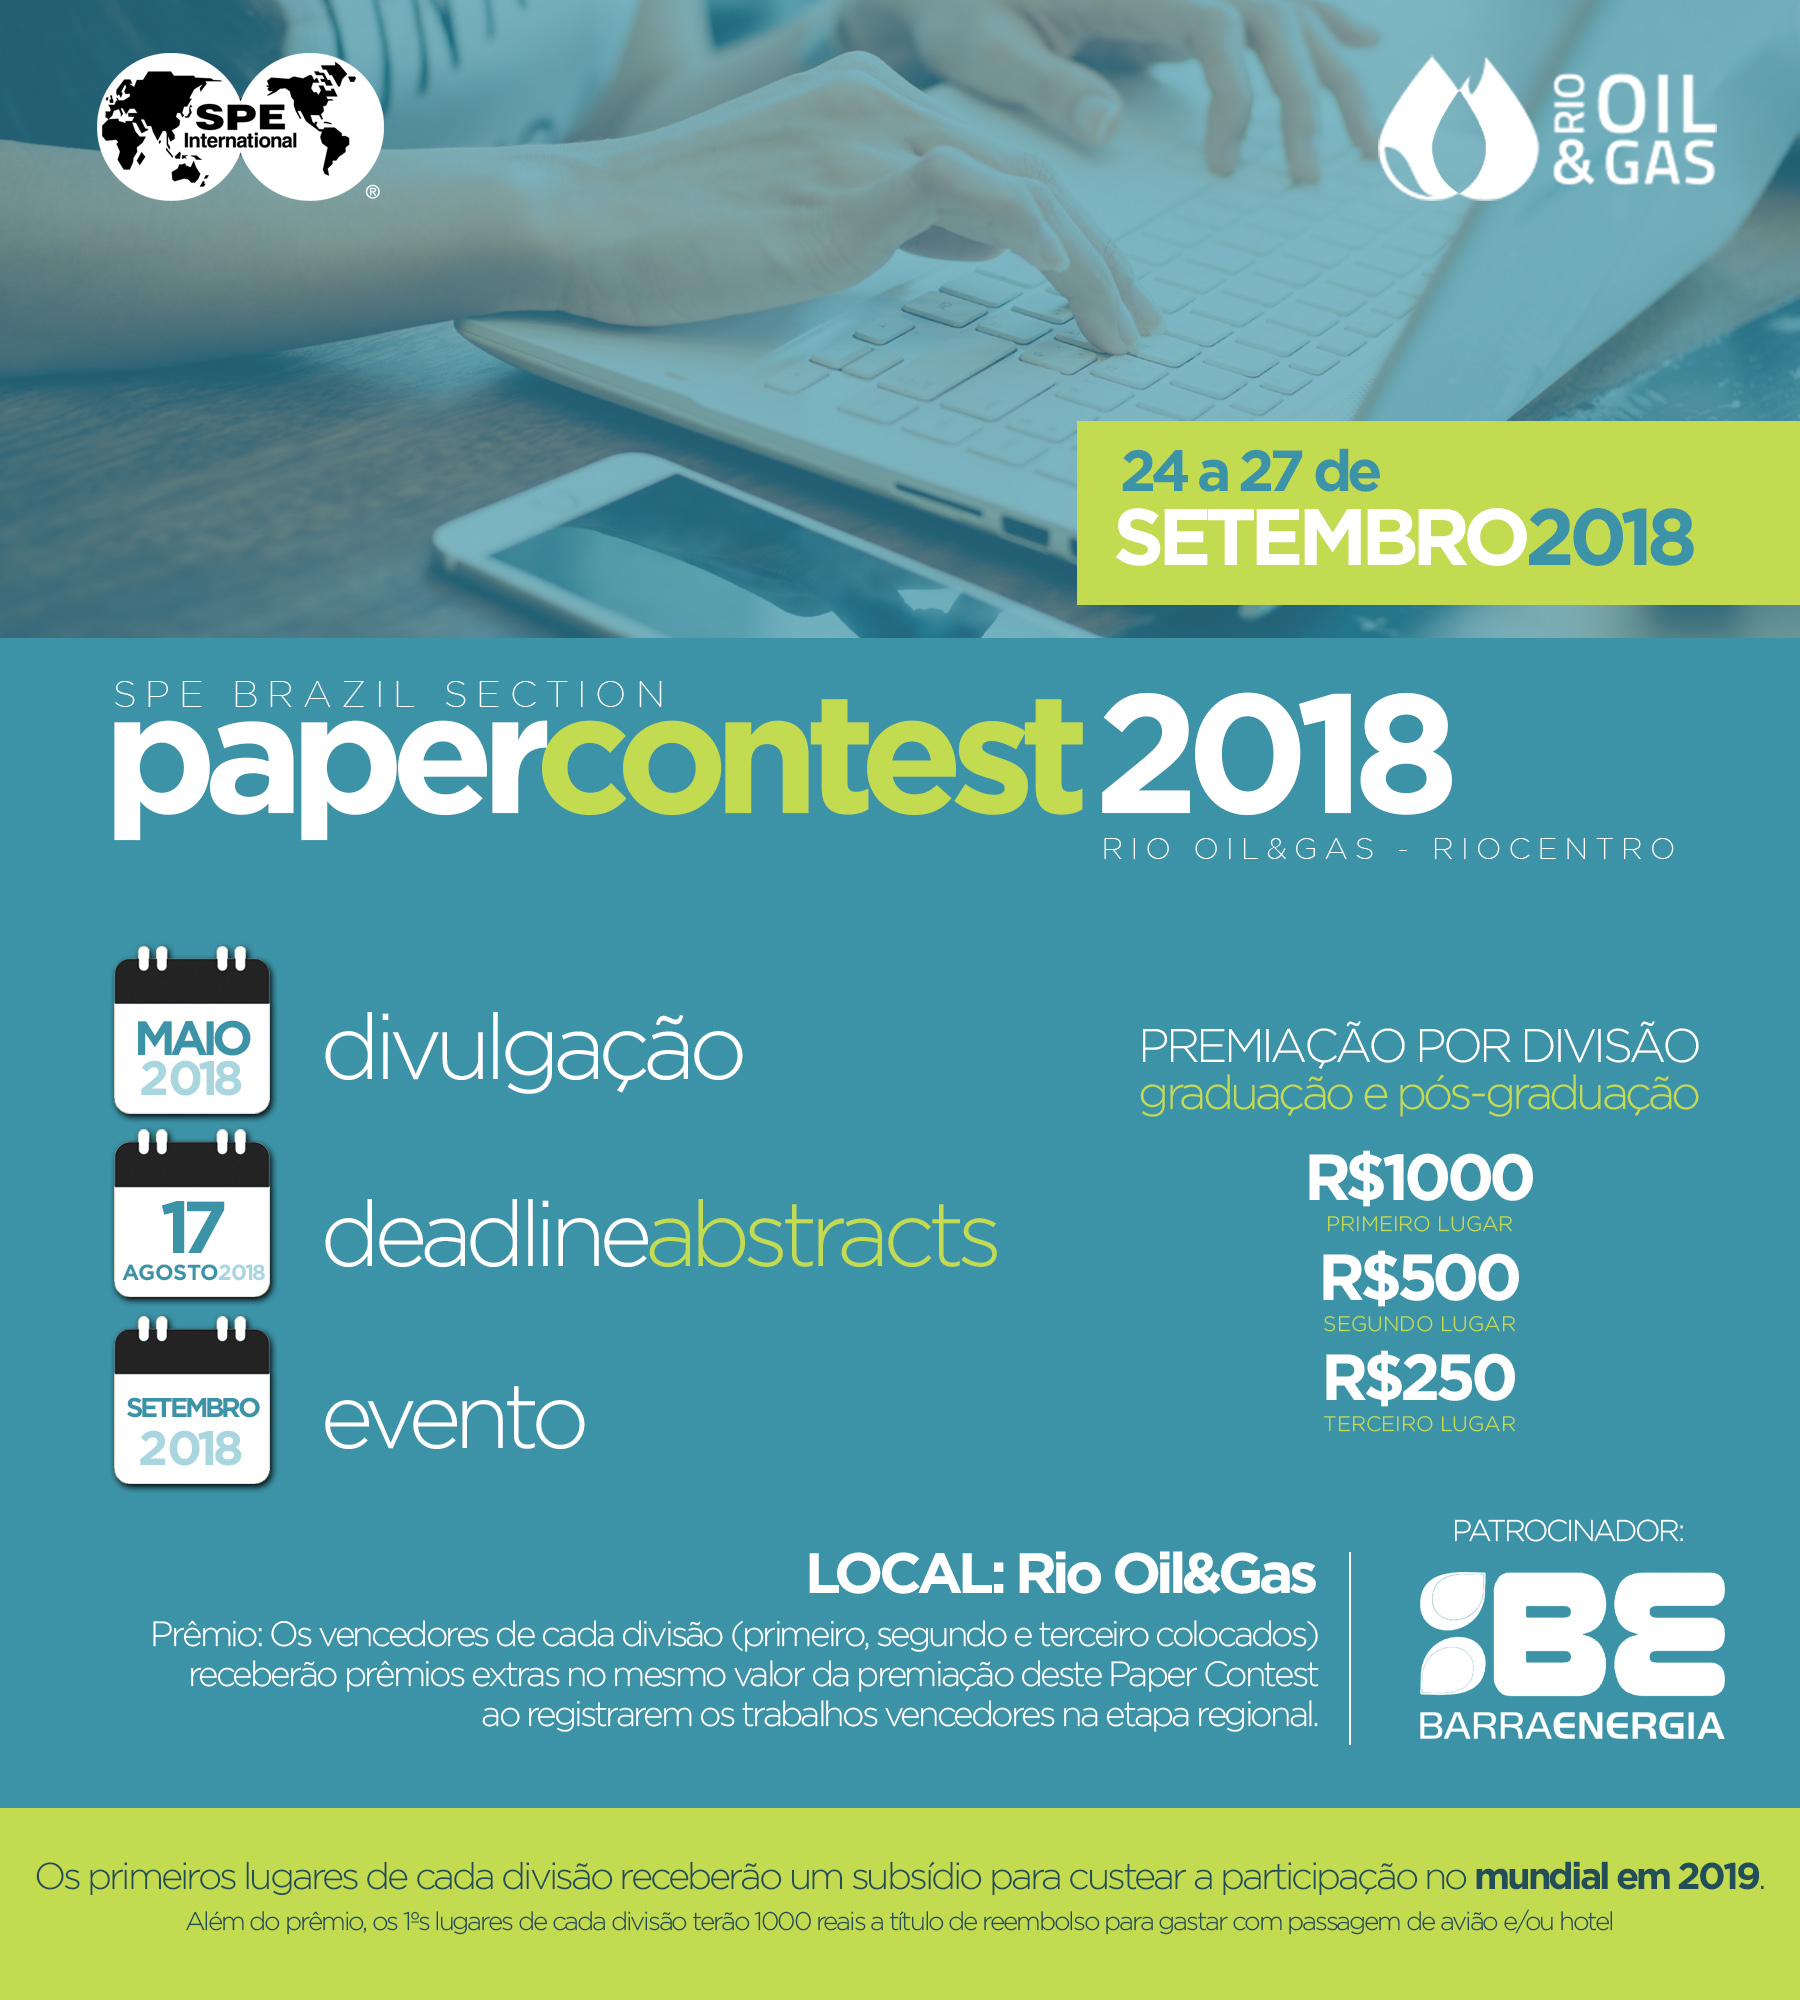 STUDENT PAPER CONTEST 2018